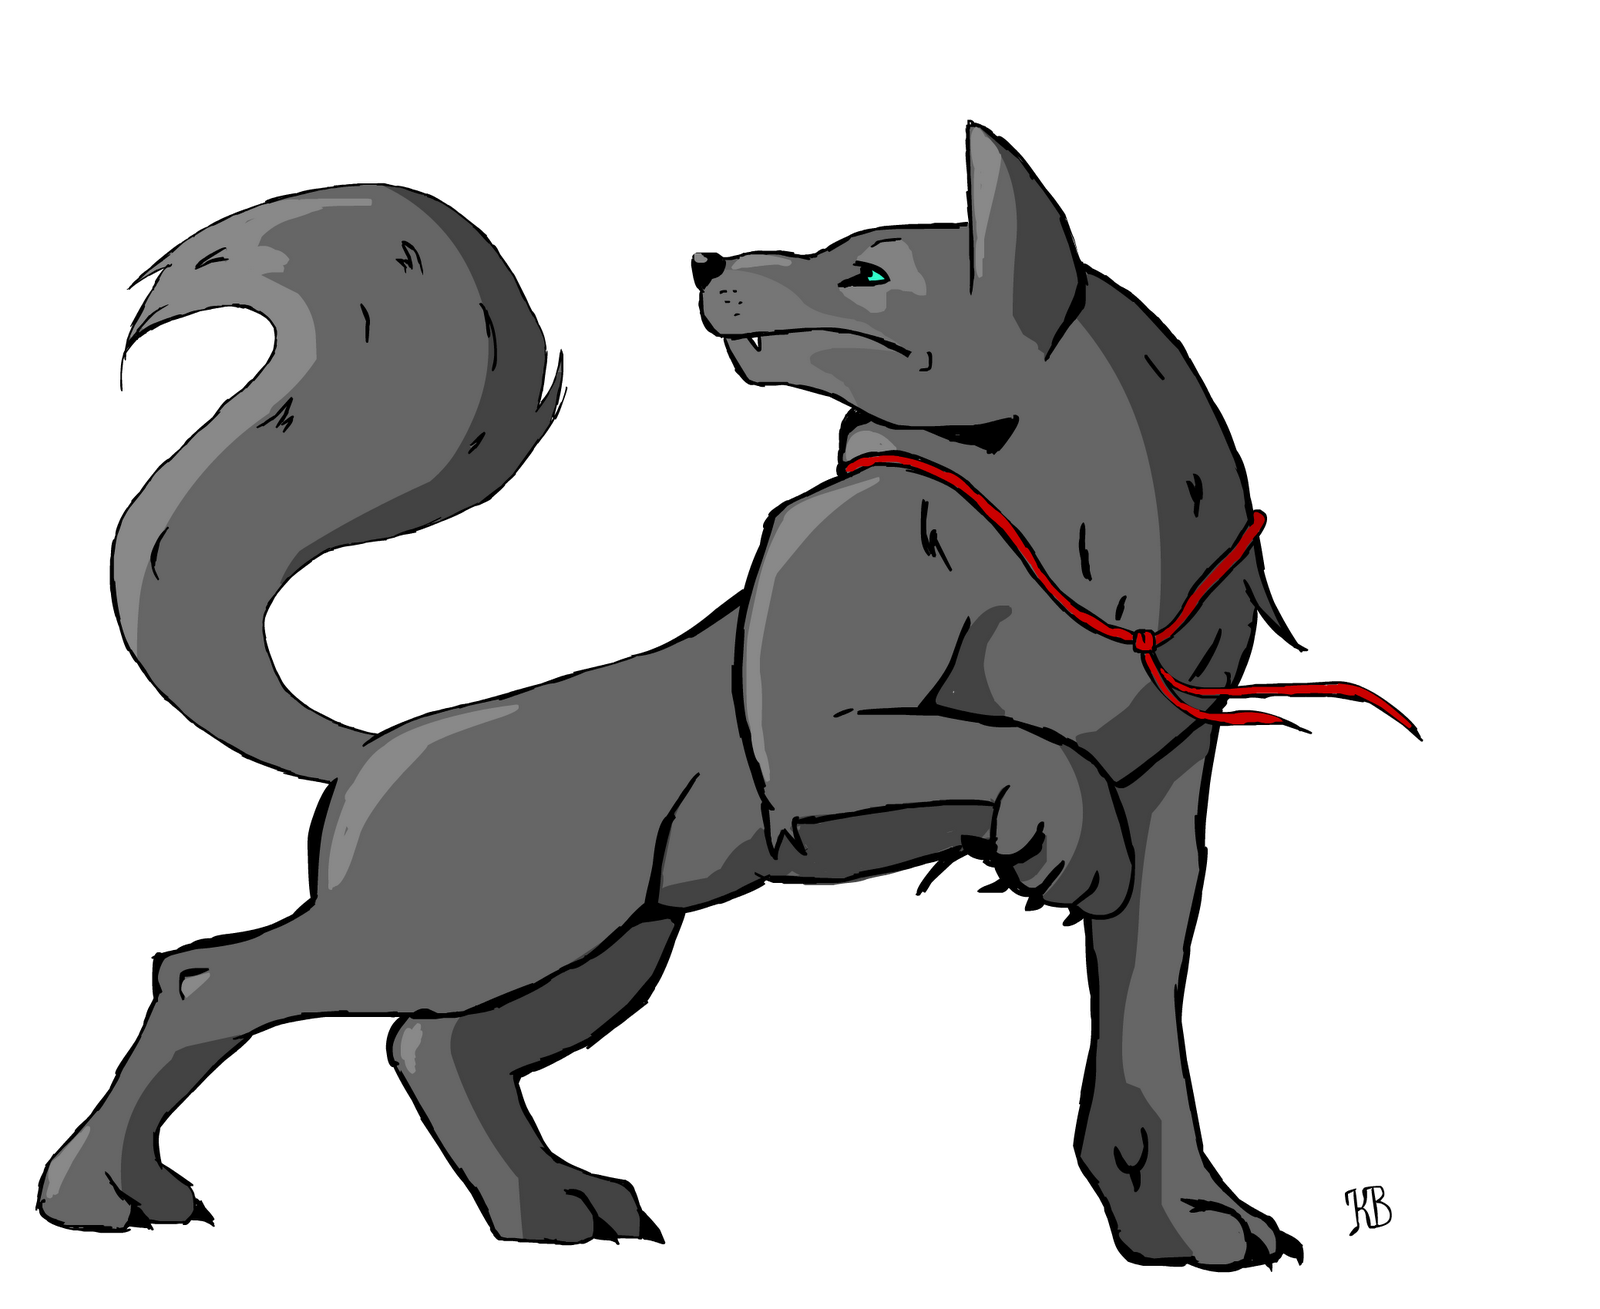 Fenrir drawing chained. Kylie burrell s digital